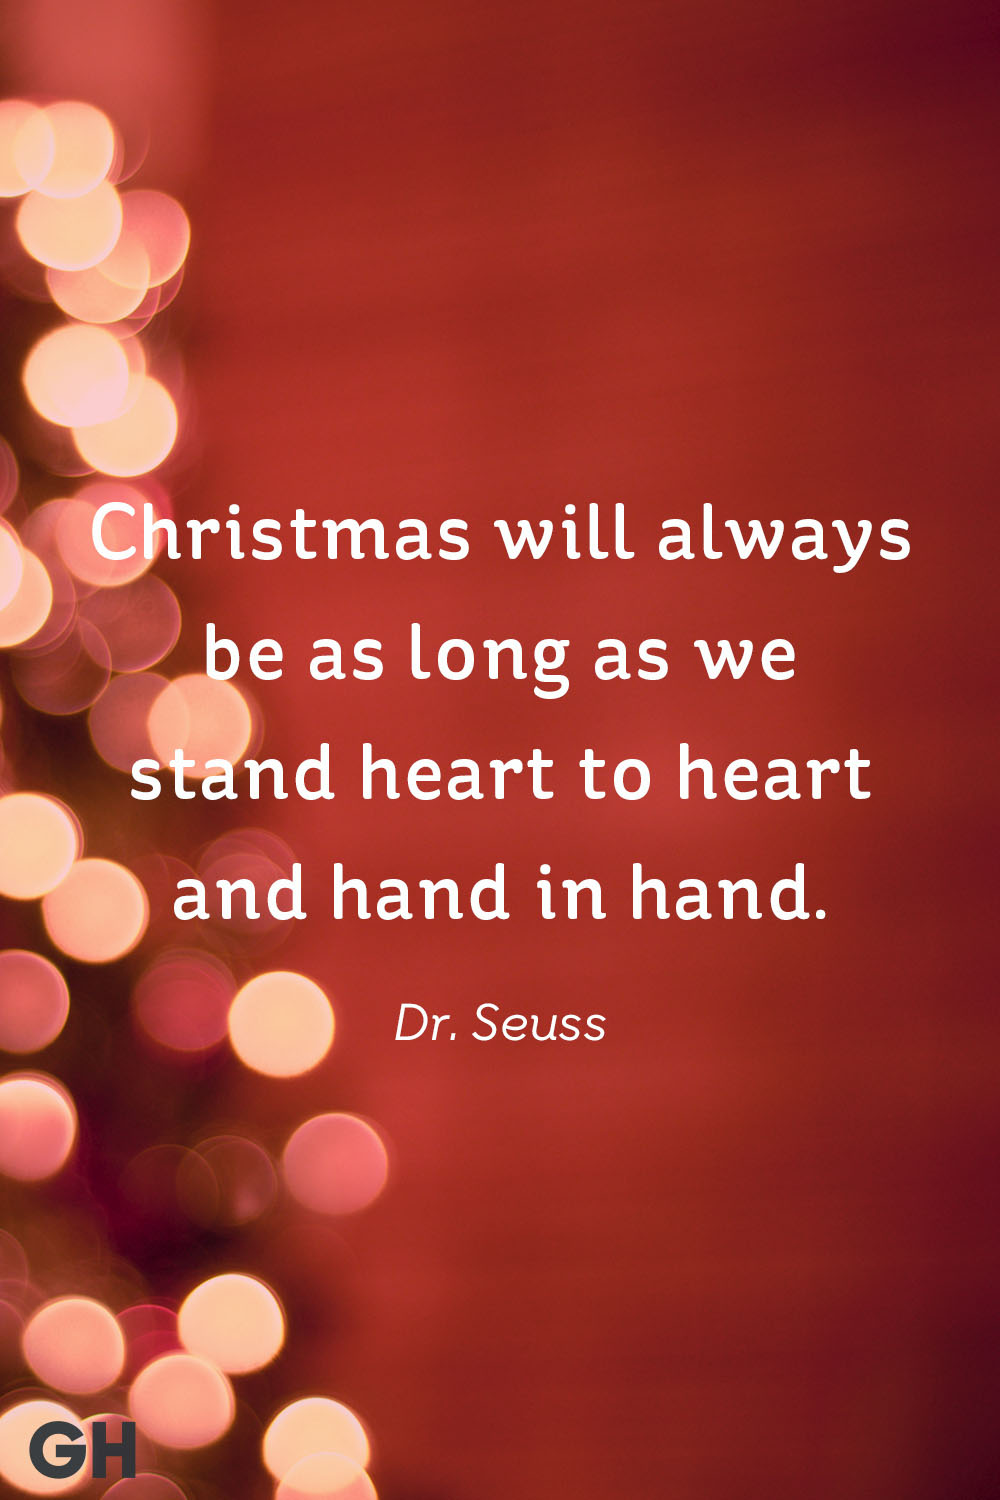 27 Best Christmas Quotes of All Time - Festive Holiday Sayings